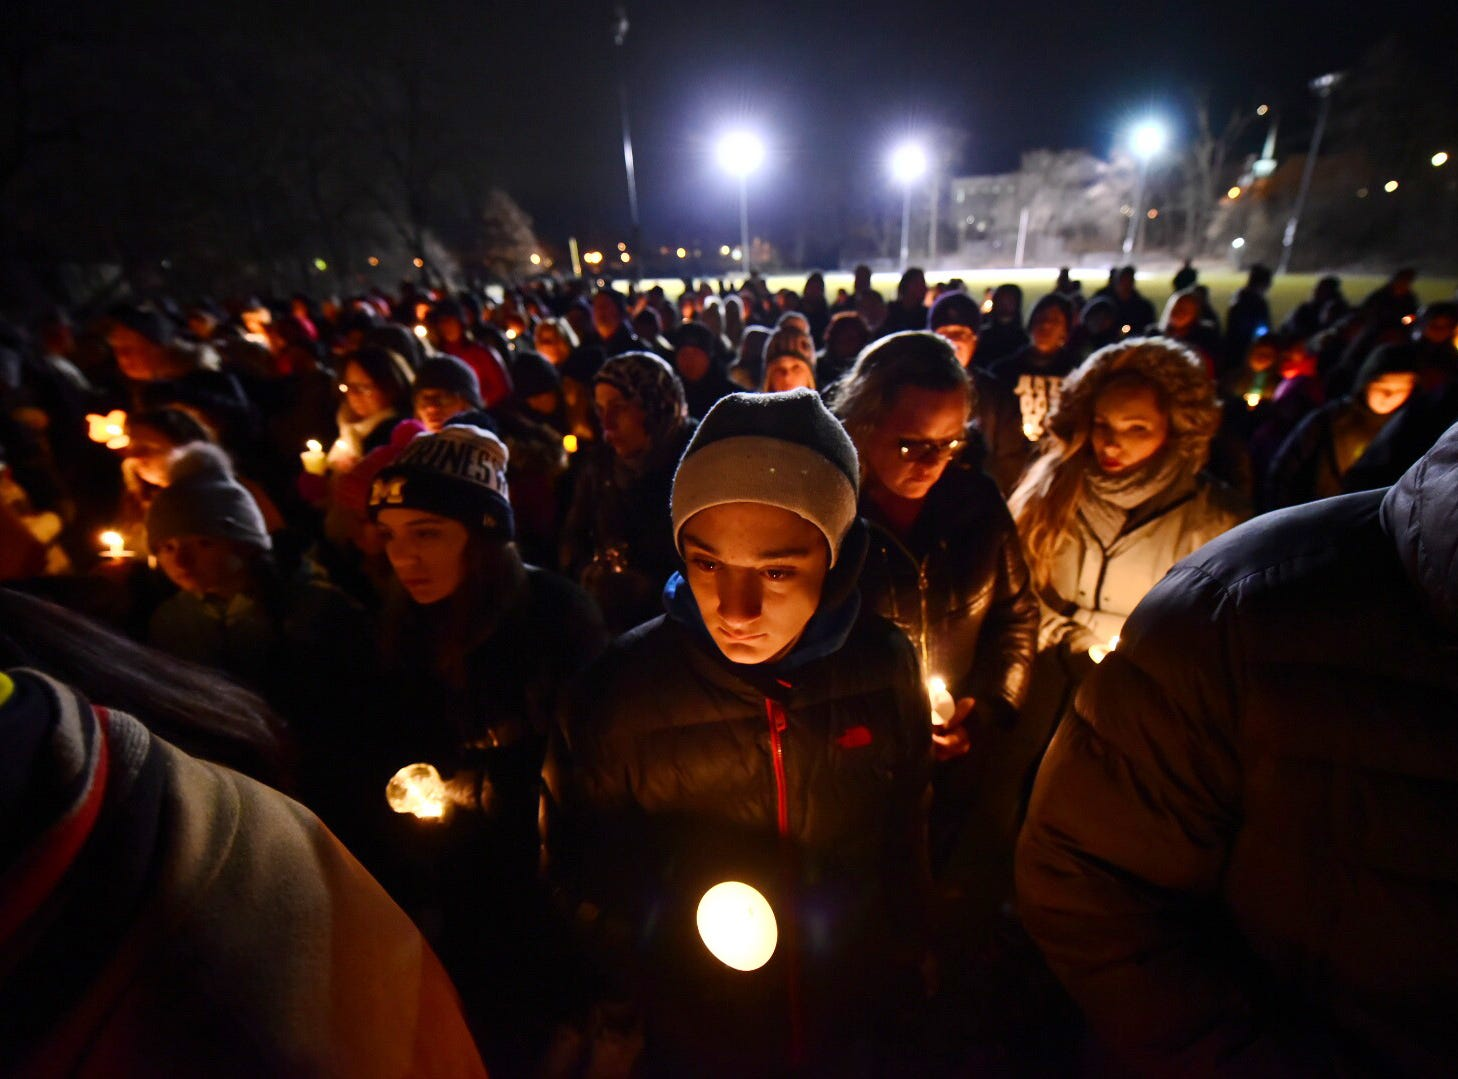 Community members brave the cold Friday evening at Ford Field Park in Northville to pay their respects at a candlelight vigil in memory of the Abbas Family -- Issam, Rima and their three children Ali, 14, Isabelle, 13 and Giselle, 7,--  who all were tragically killed in a wrong-way driver traffic accident in Kentucky last Sunday while returning from a Family vacation. Photos taken on January 11, 2019.